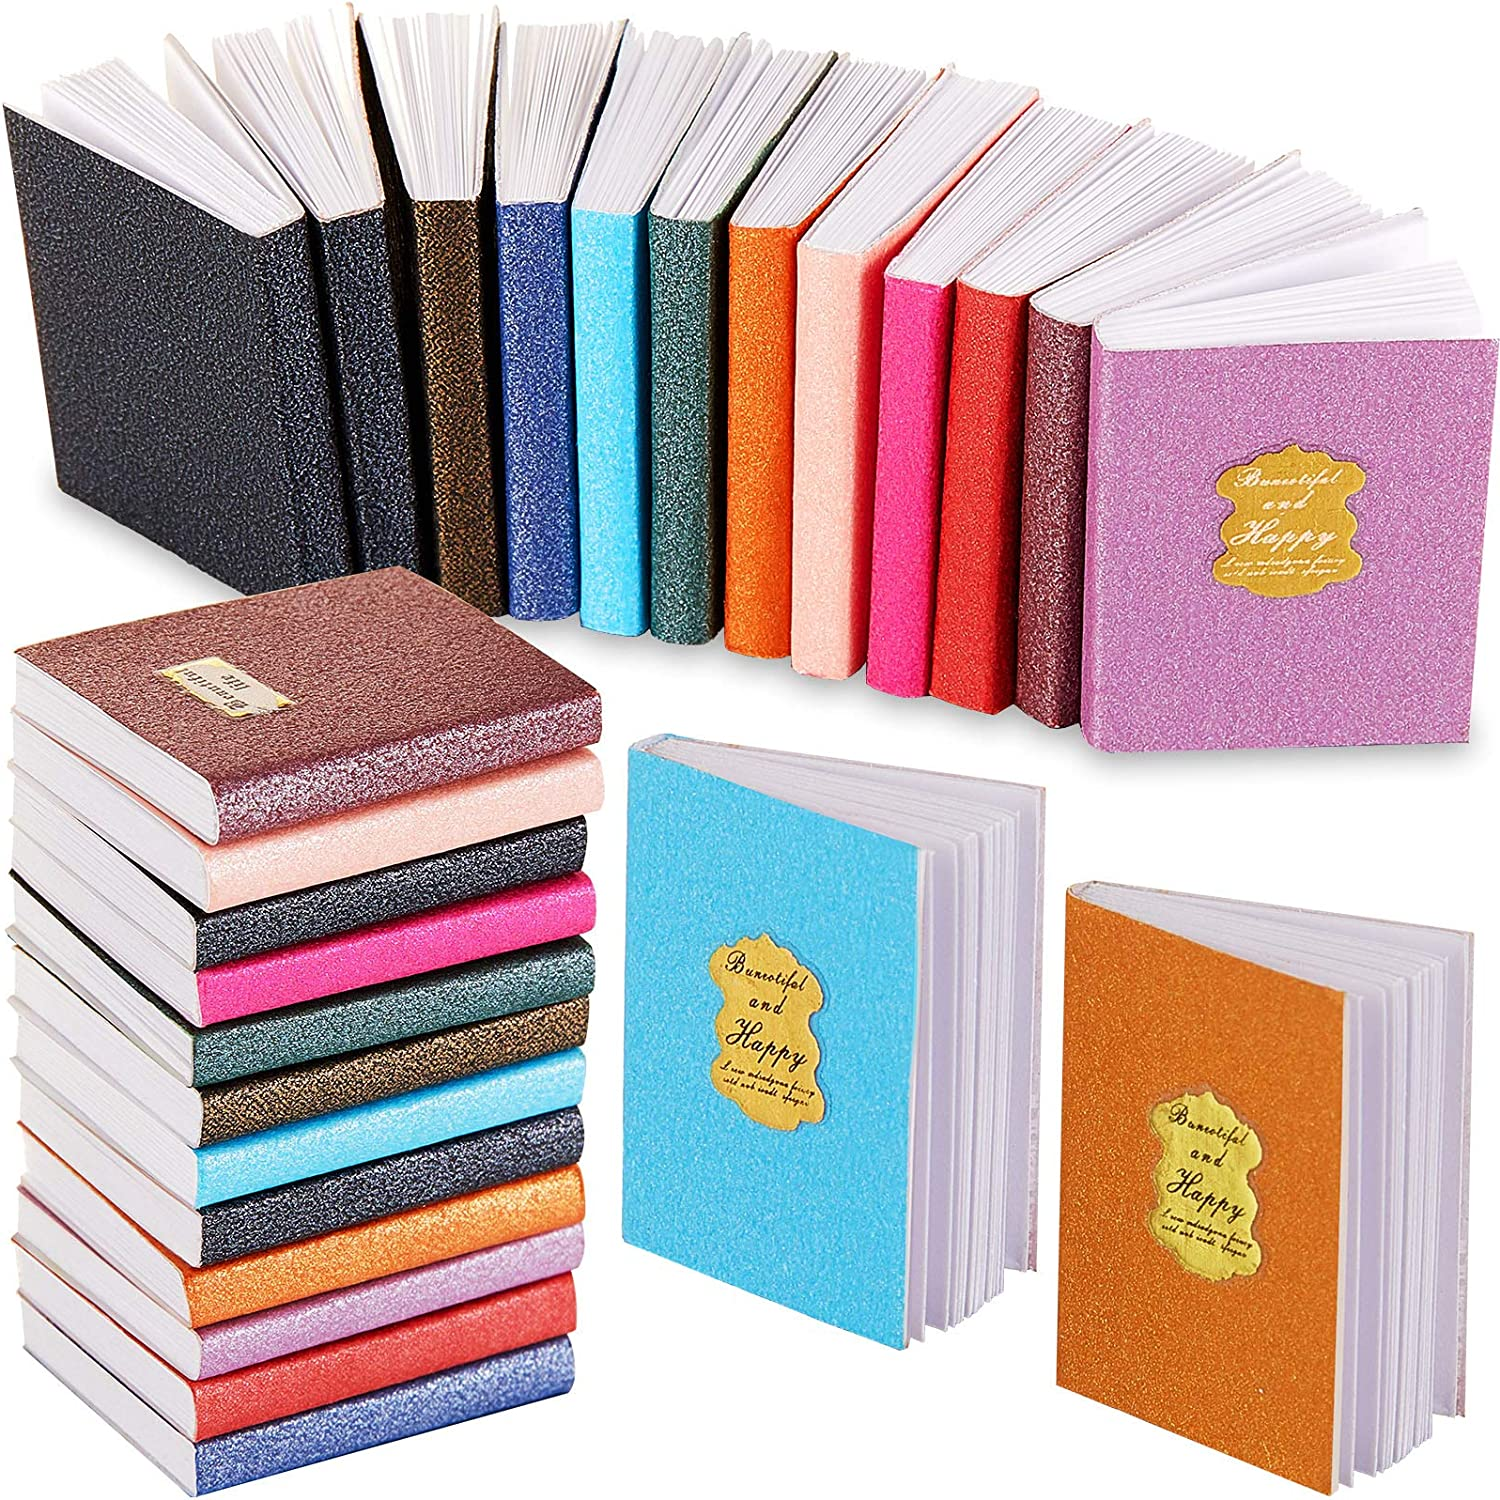 24 Pieces 1:12 Scale Miniatures Dollhouse Books Assorted Miniatures Books Dollhouse Mini Books Dollhouse Decoration Accessories Doll Toy Supplies for Boys Girls Pretend Play